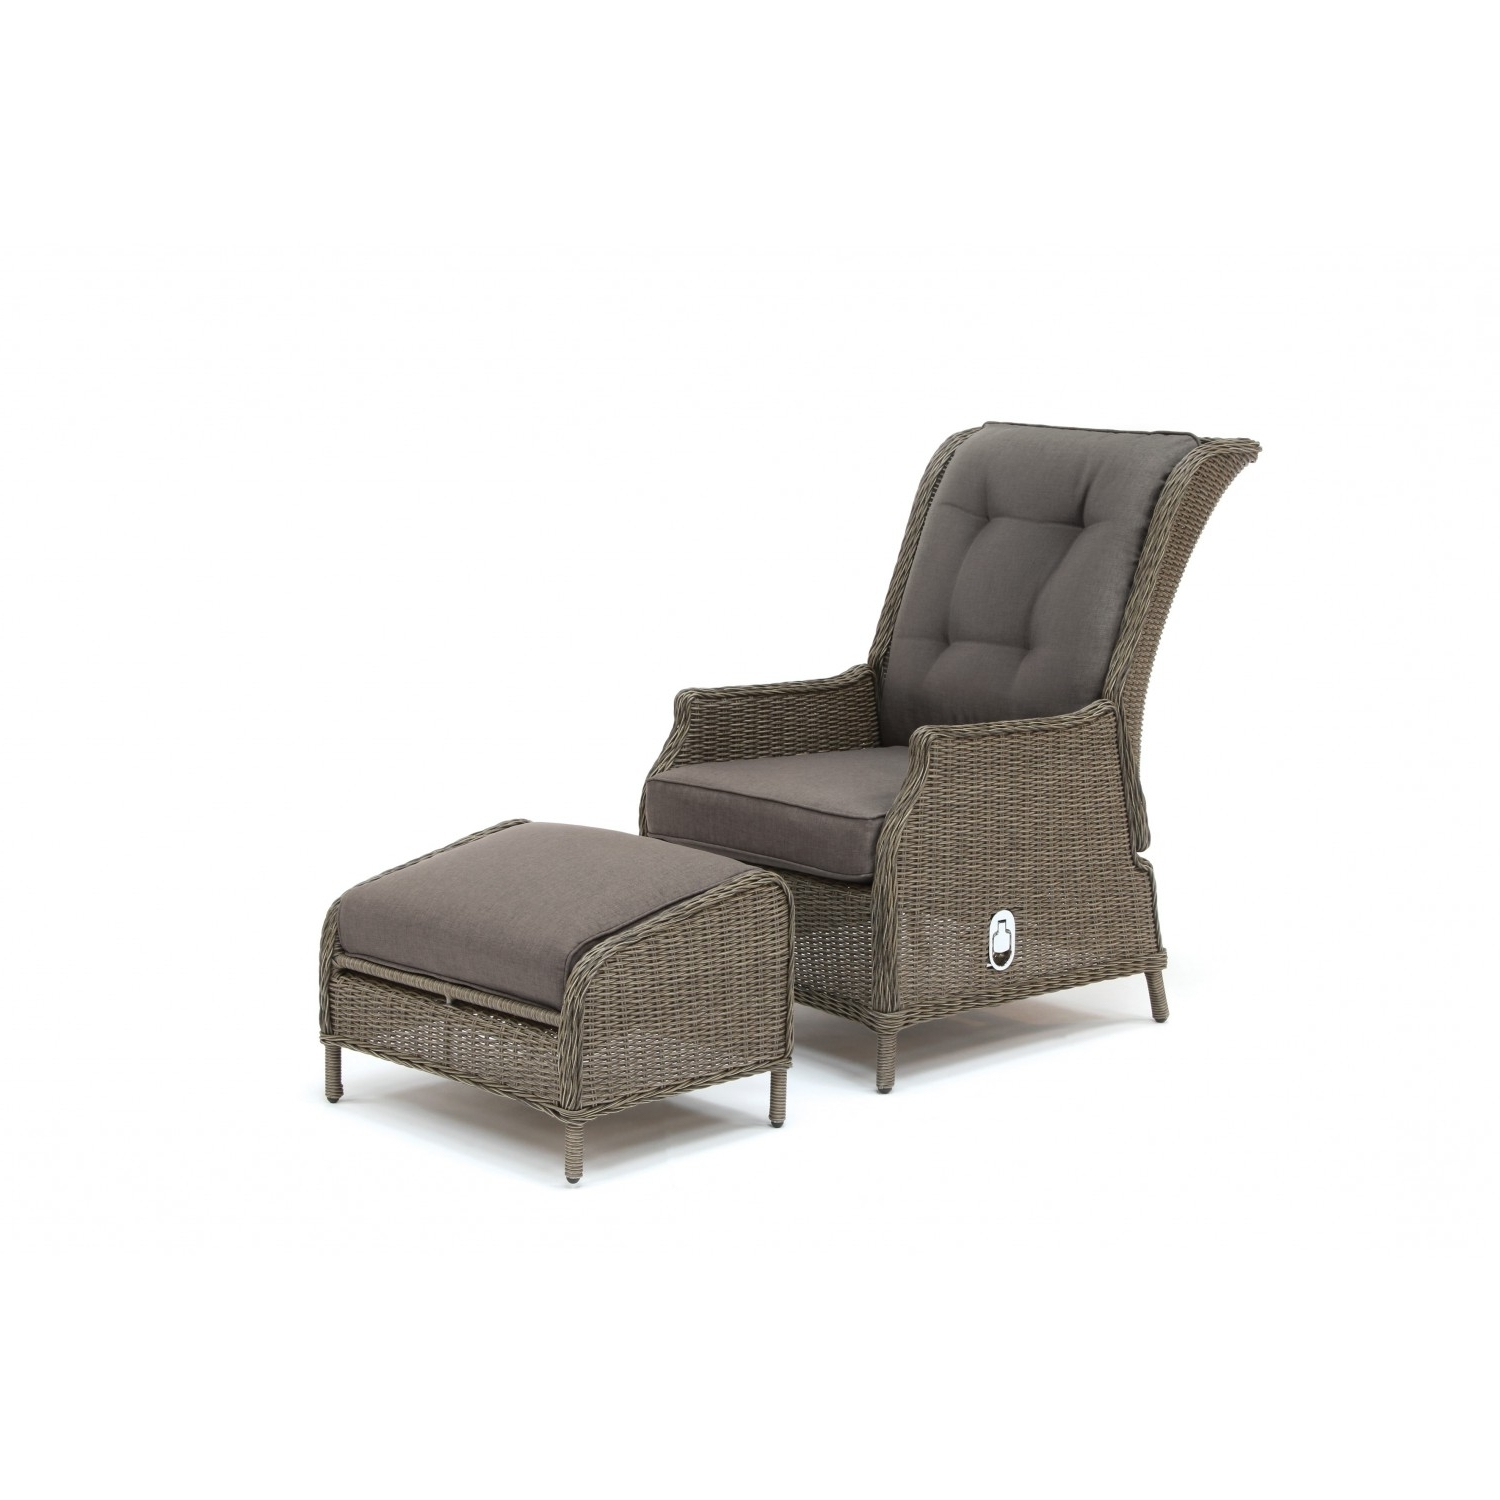 Kettler Chaise Lounge Chairs Within Best And Newest Kettler Jarvis Recliner With Footstool – Rattan Inc Taupe Cushions (Gallery 7 of 15)